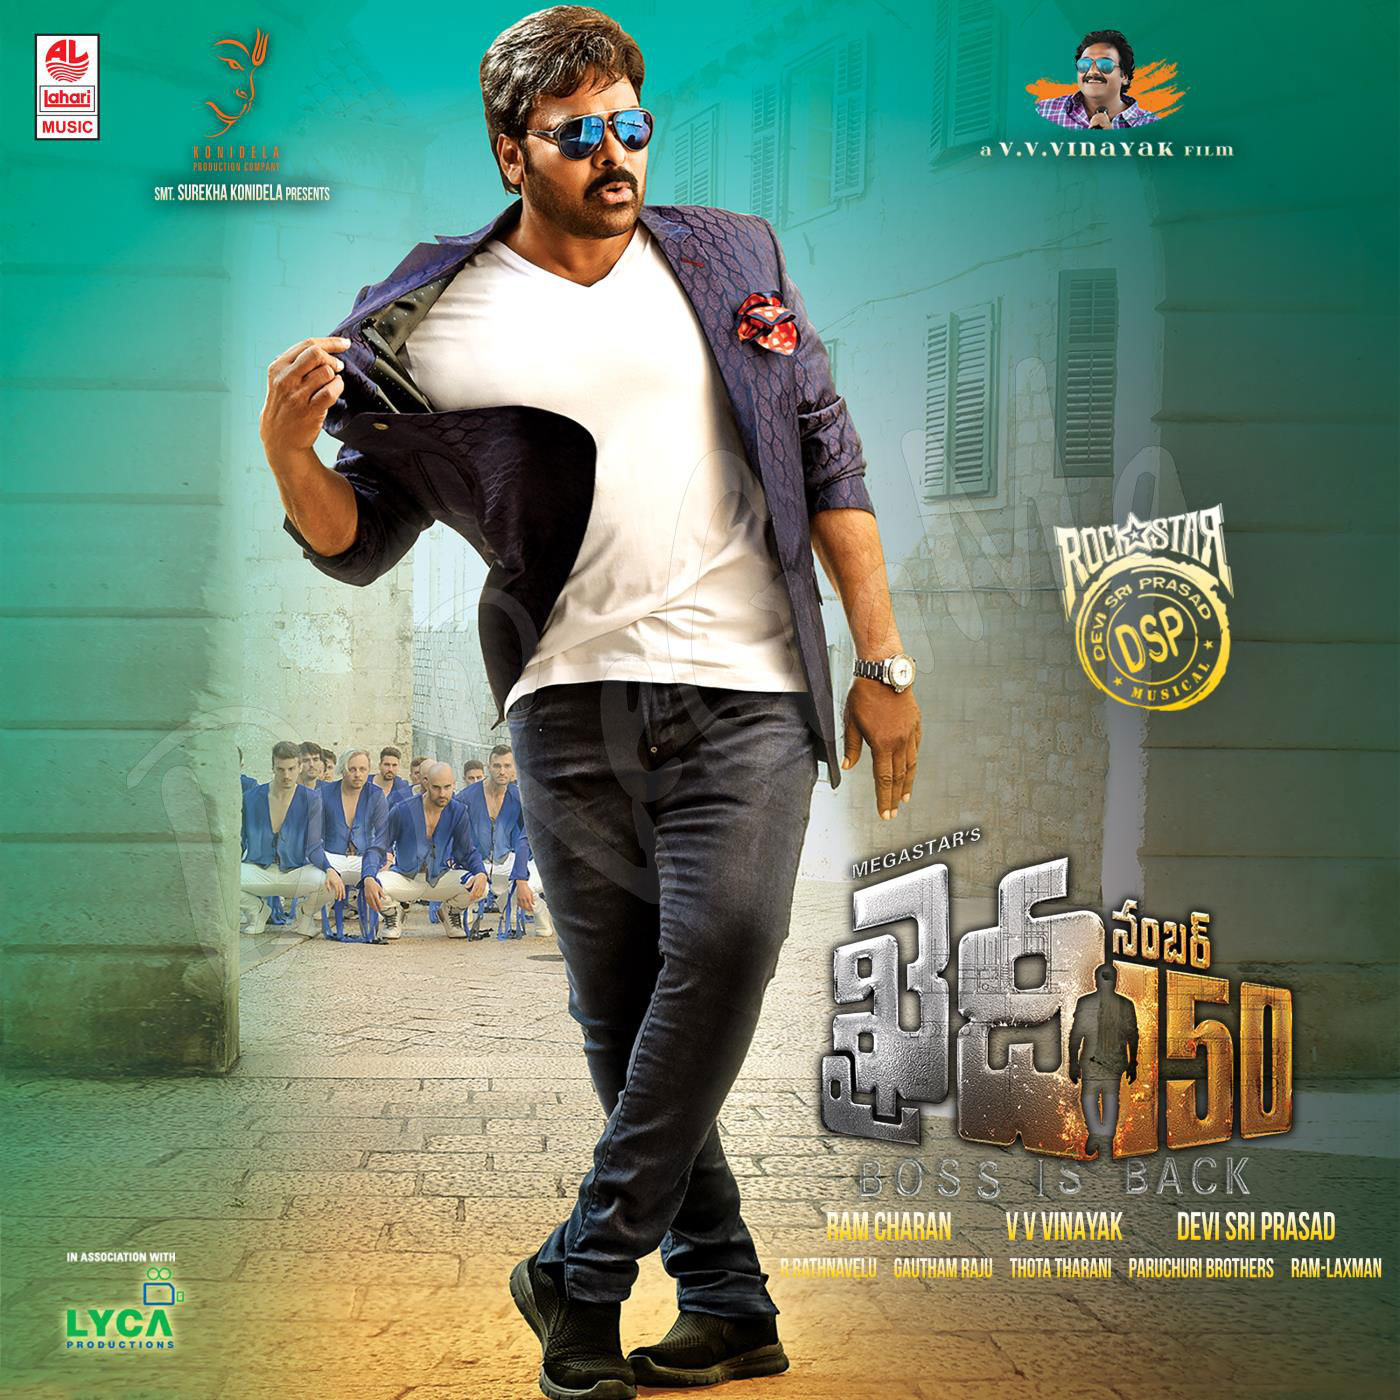 Megastar Chiranjeevi Khaidi No 150 Fuu--Songs Audio CD Front Cover 2017 HD